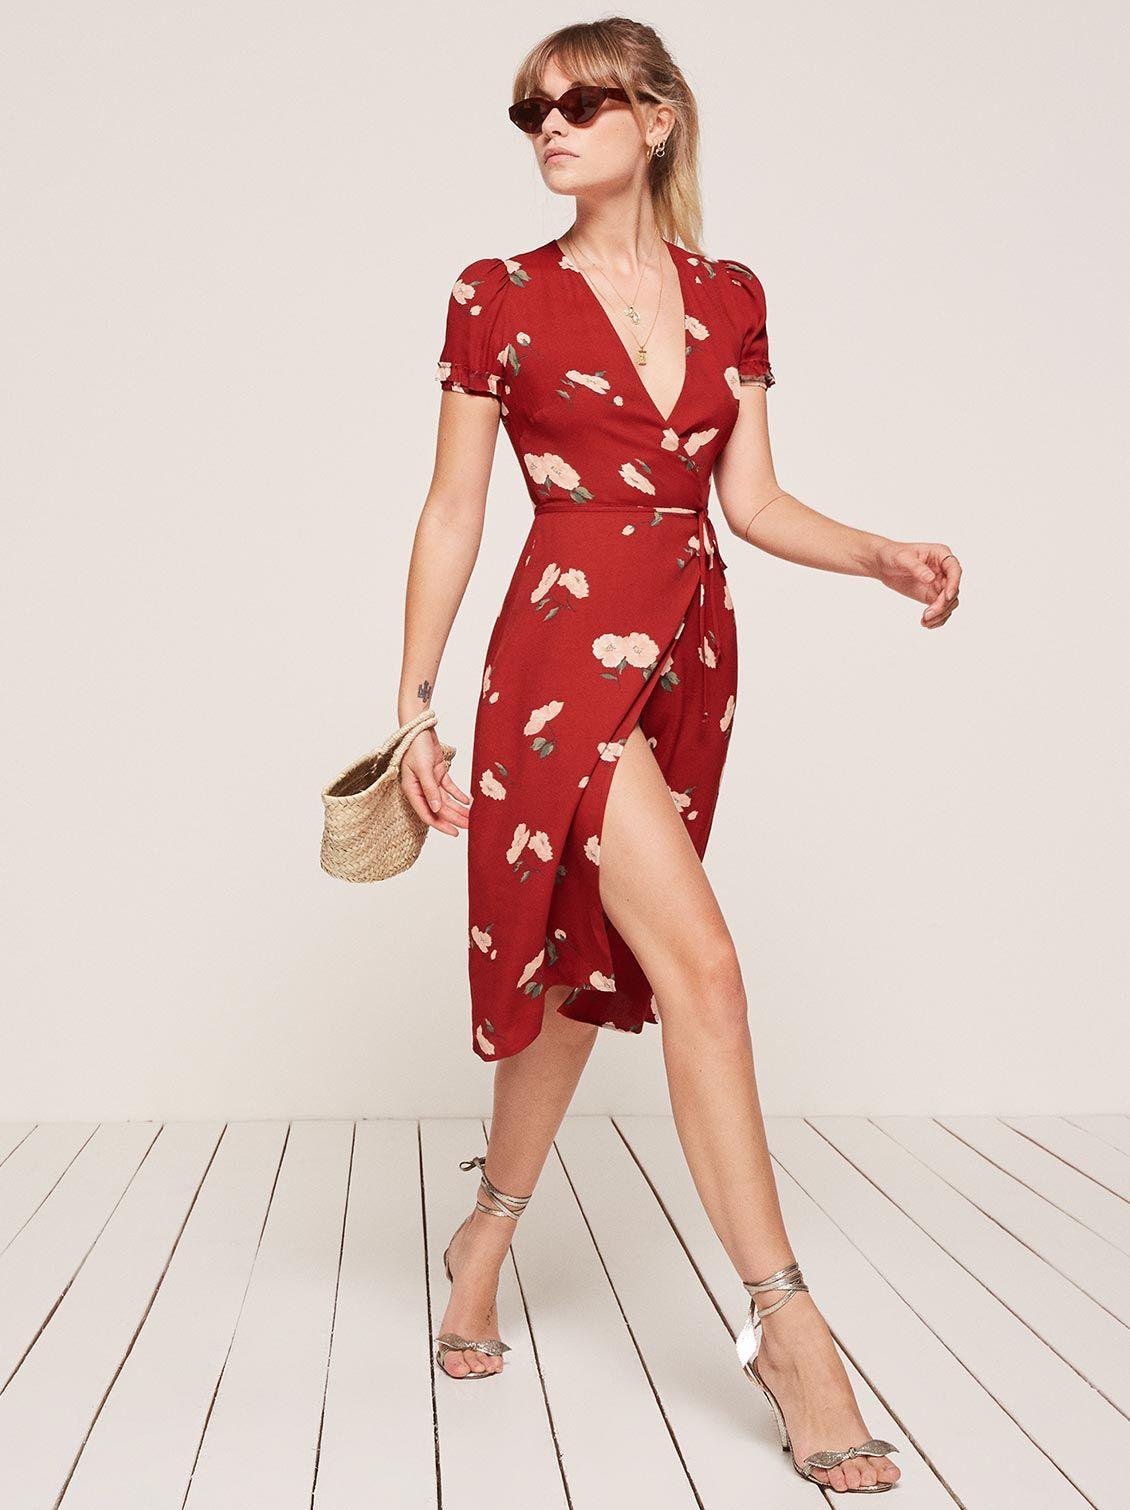 ad62a0575f Addy red floral wrap dress Reformation